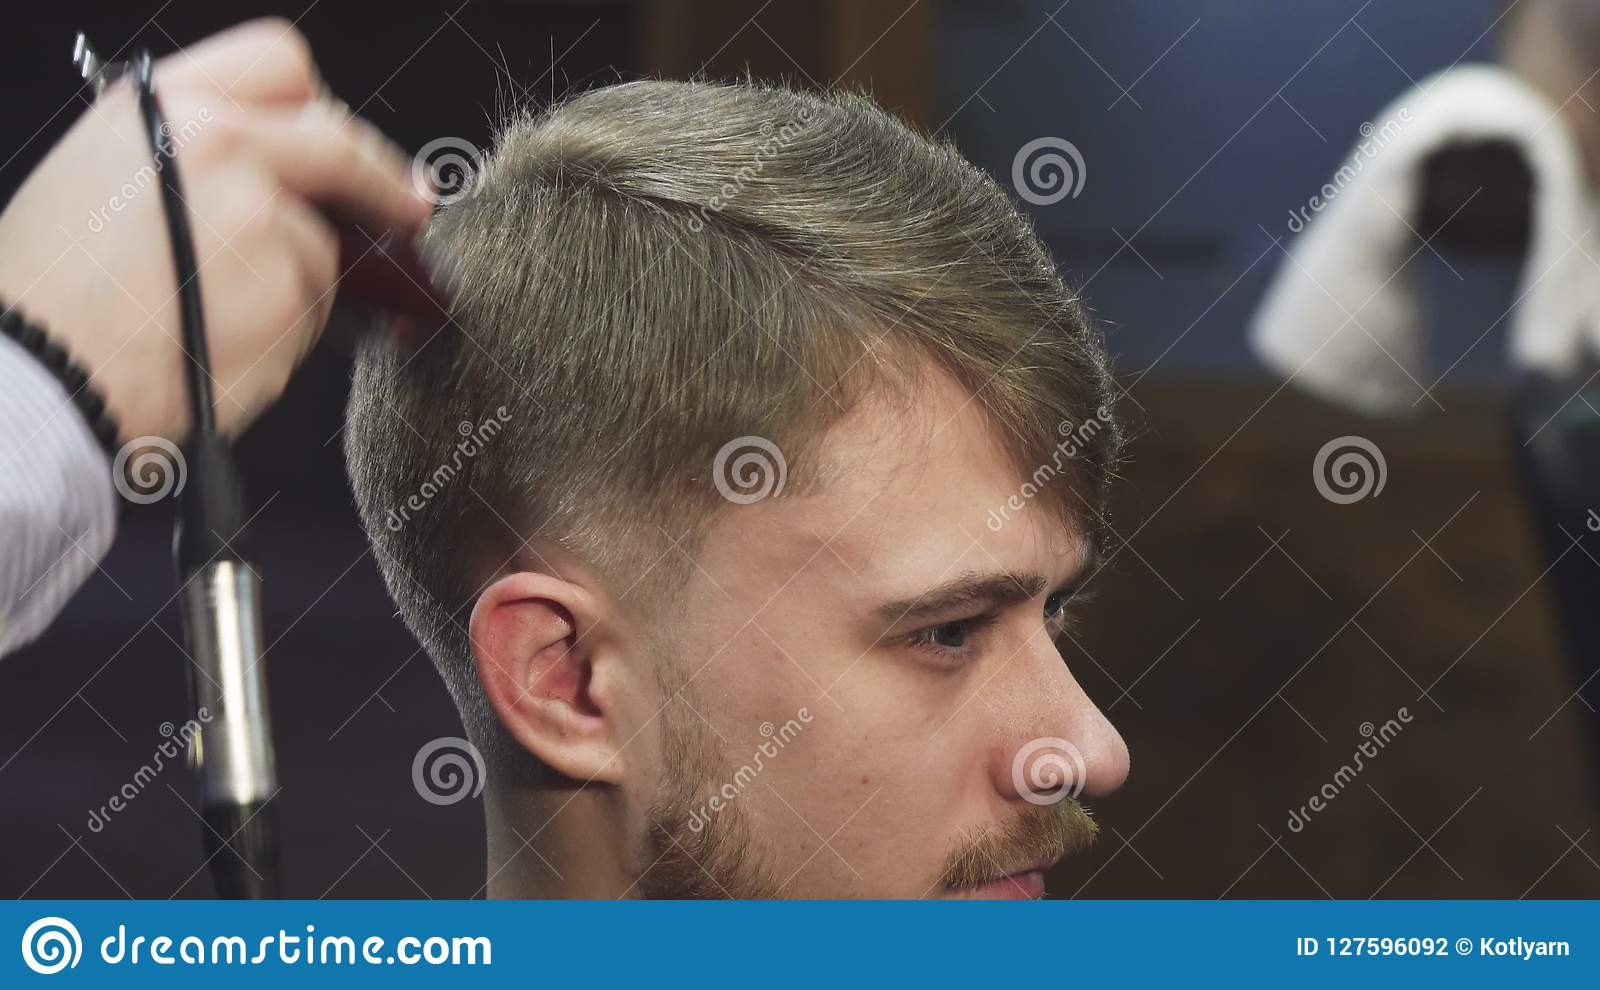 Close up of a handsome yougn man getting a haircut at the barbershop